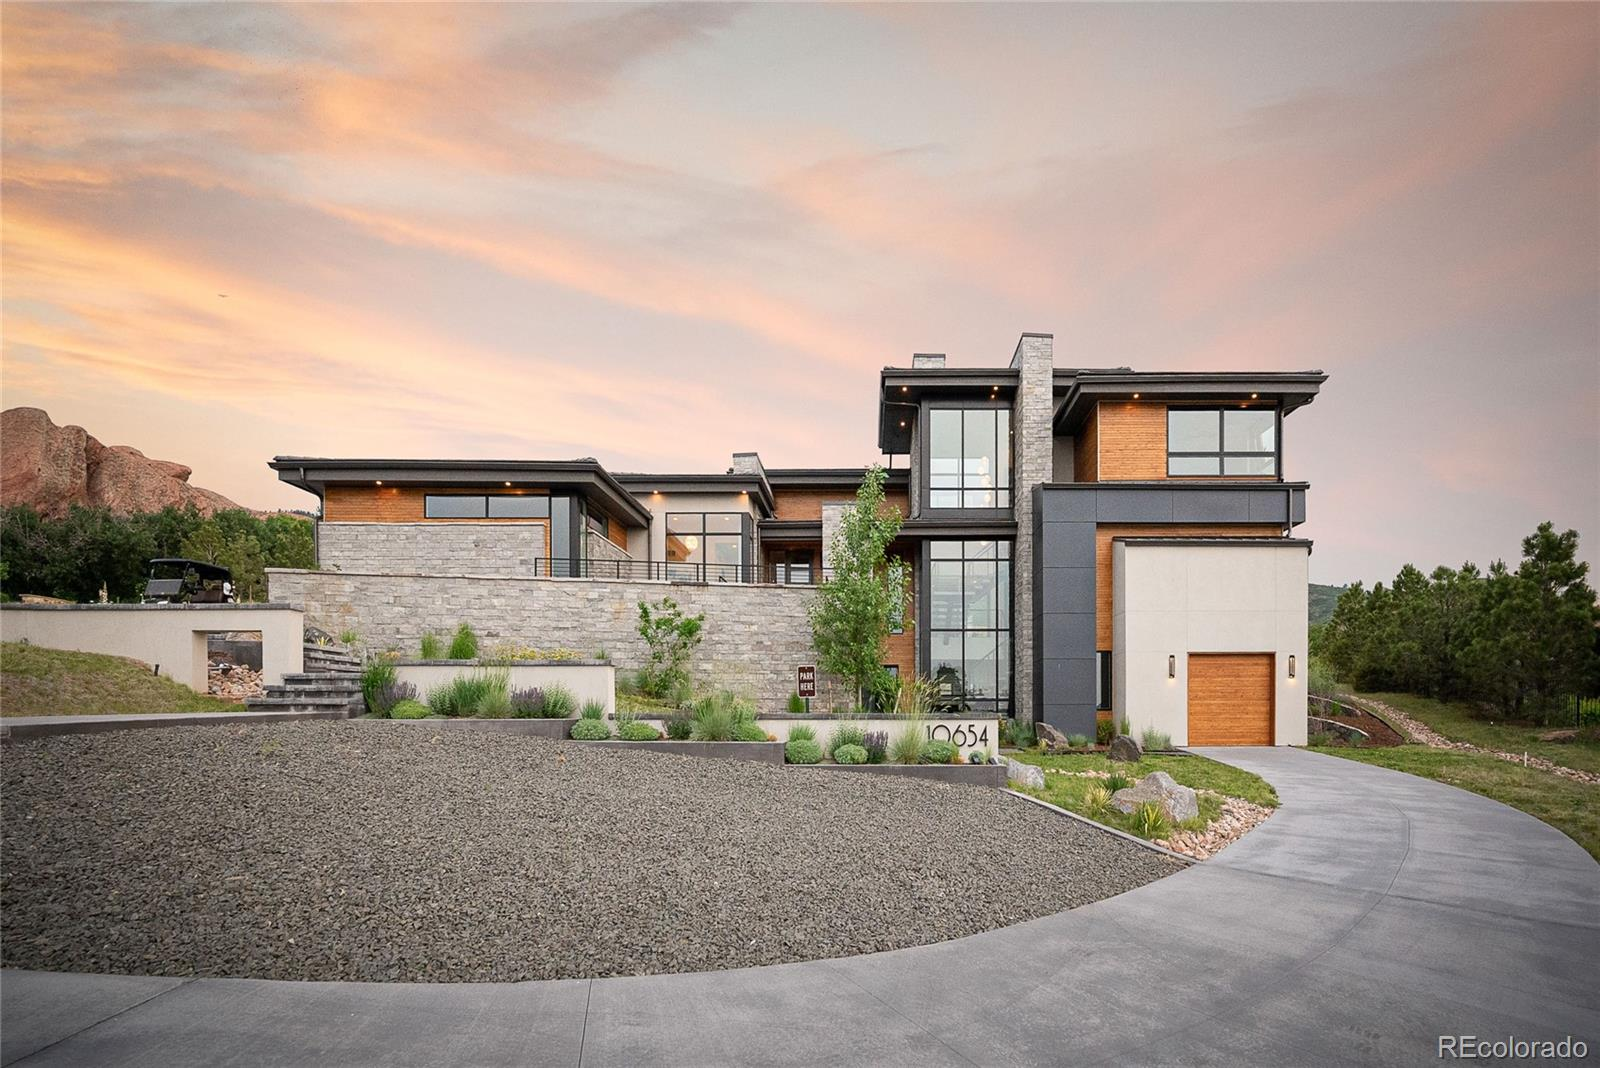 Stunning Modern Estate now available at Ravenna on nearly an acre. Rare, once-in-a-lifetime opportunity to own this super custom home on one of Ravenna's best homesites. Not a detail is missed as this home has been carefully designed to take advantage of the red rock outcroppings, city and 180 degree mountain views. Upon entry from a suspended walkway, an entry foyer invites you into a great room with floor to ceiling glass and plenty of natural light. The main level is highlighted by a custom kitchen and pantry by award-winning Veselbrand Studios, dining room, wet bar, family room with linear fireplace, laundry room and a spa like master suite, heated floors, with two walk-in custom closets. A modern floating staircase leading to an executive office with unforgettable views, private roof-top patio, fireplace, bar, optional bedroom and full bathroom. The lower level walk-out is complete with 2 additional Jr. Suites, game room, family room, home gym and private outdoor spaces. This is equipped with smart technologies, lutron lighting, custom window coverings, professional landscaping and unforgettable one-of-a-kind architecture designed by award-winning architects Godden/Sudik Architects.